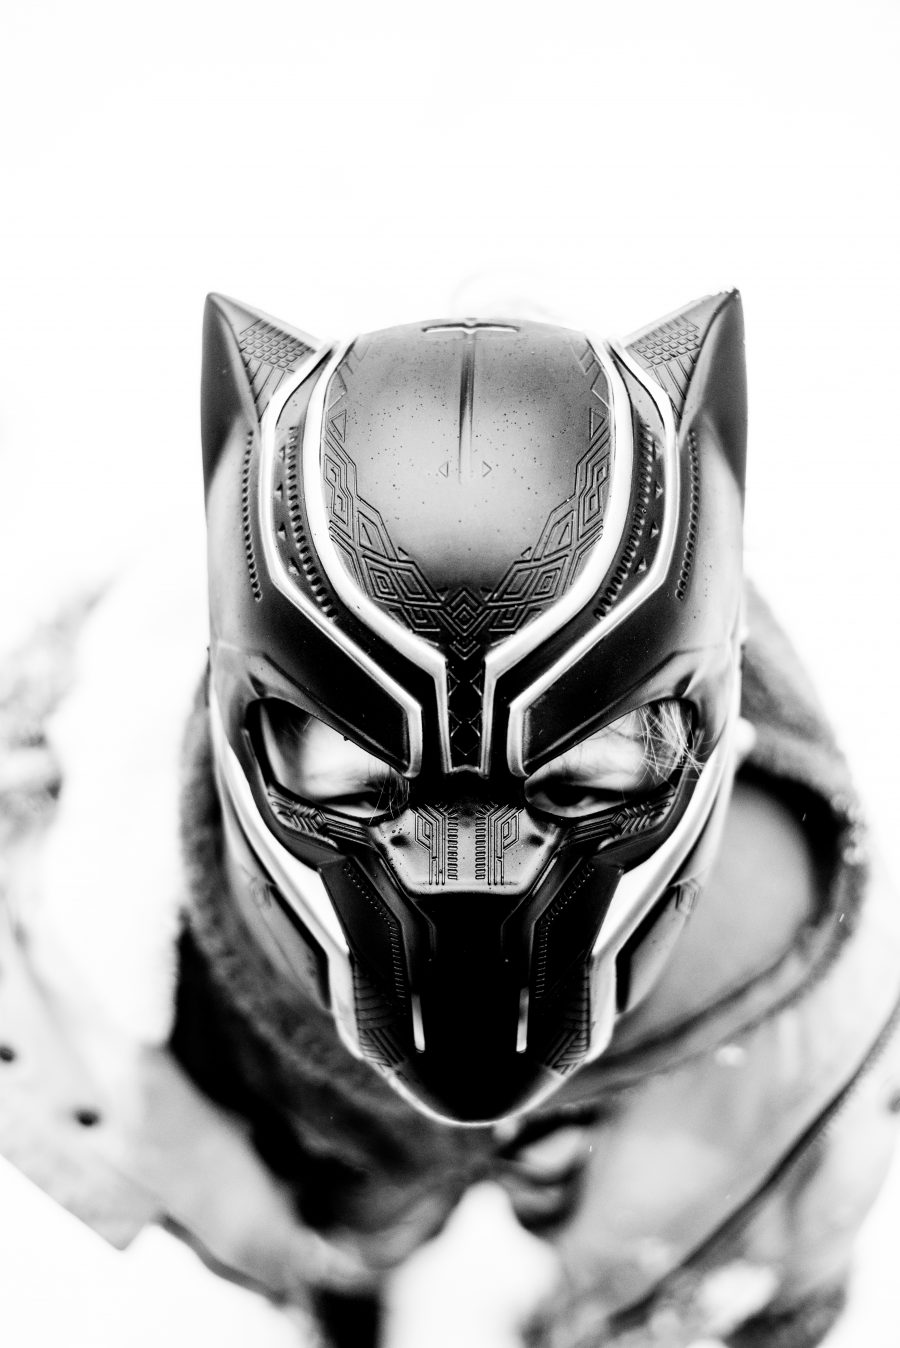 Disney Marvel Black Panther Disney Store